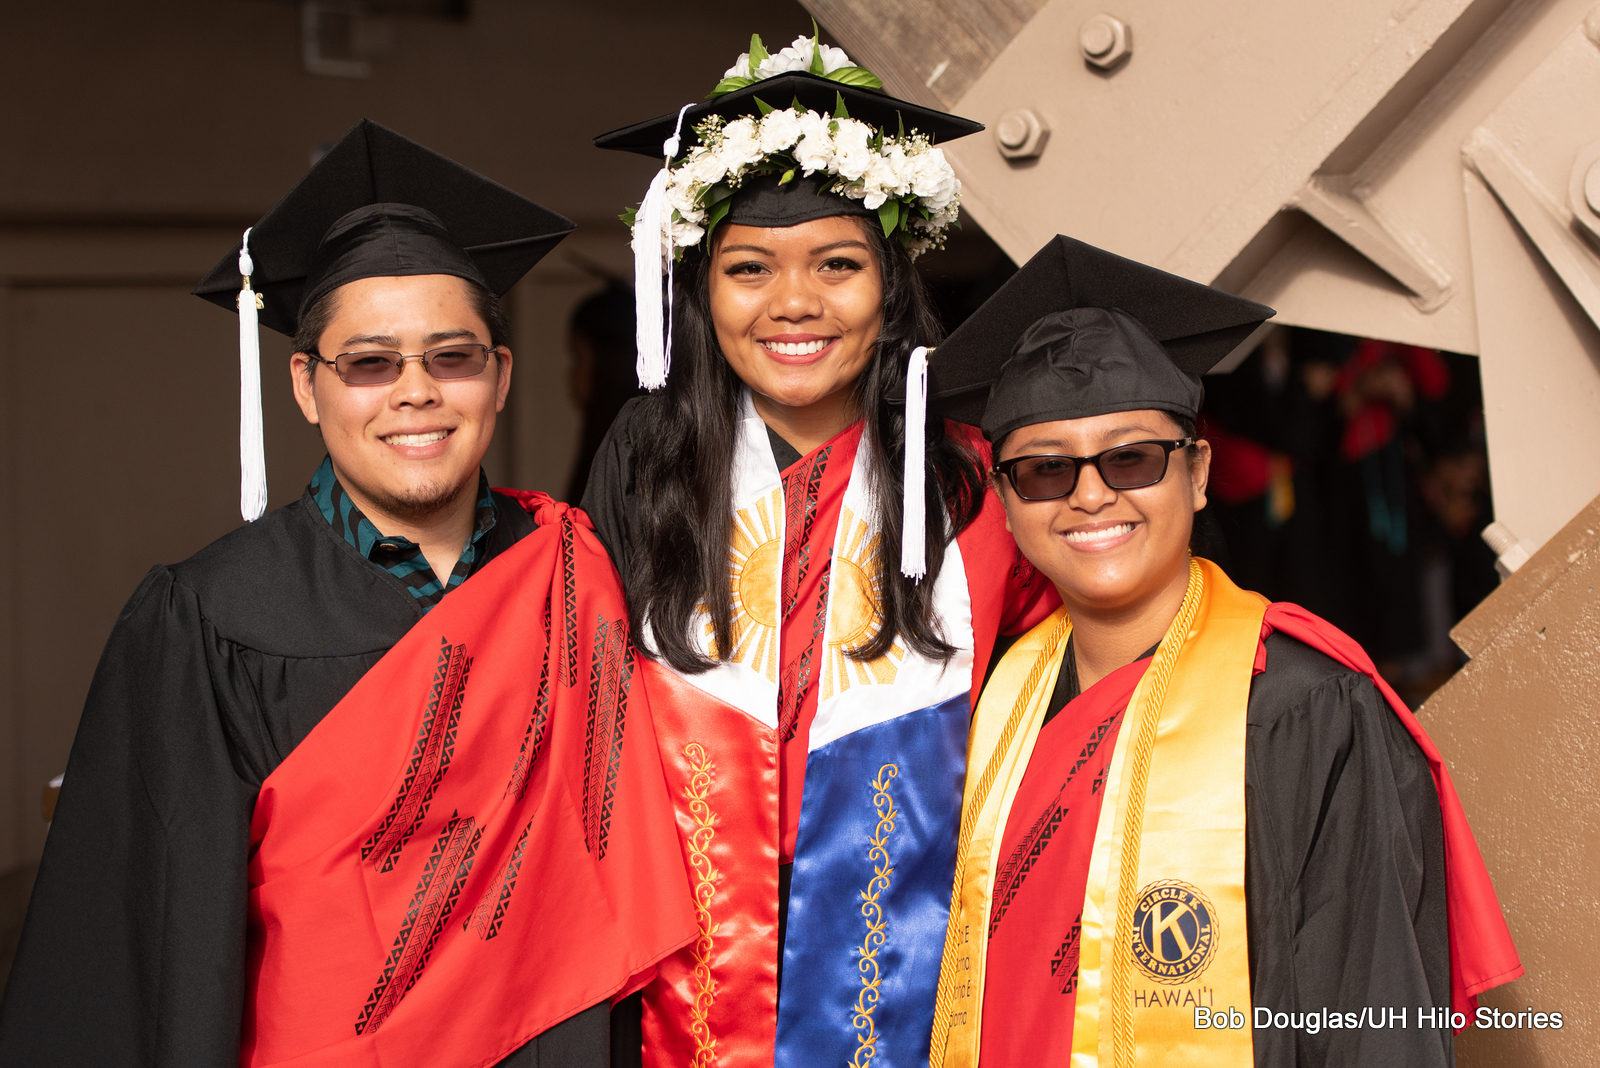 Three graduates in regalia, red, blue, and yellow sashes. Young woman in center has head lei wrapped around her cap.